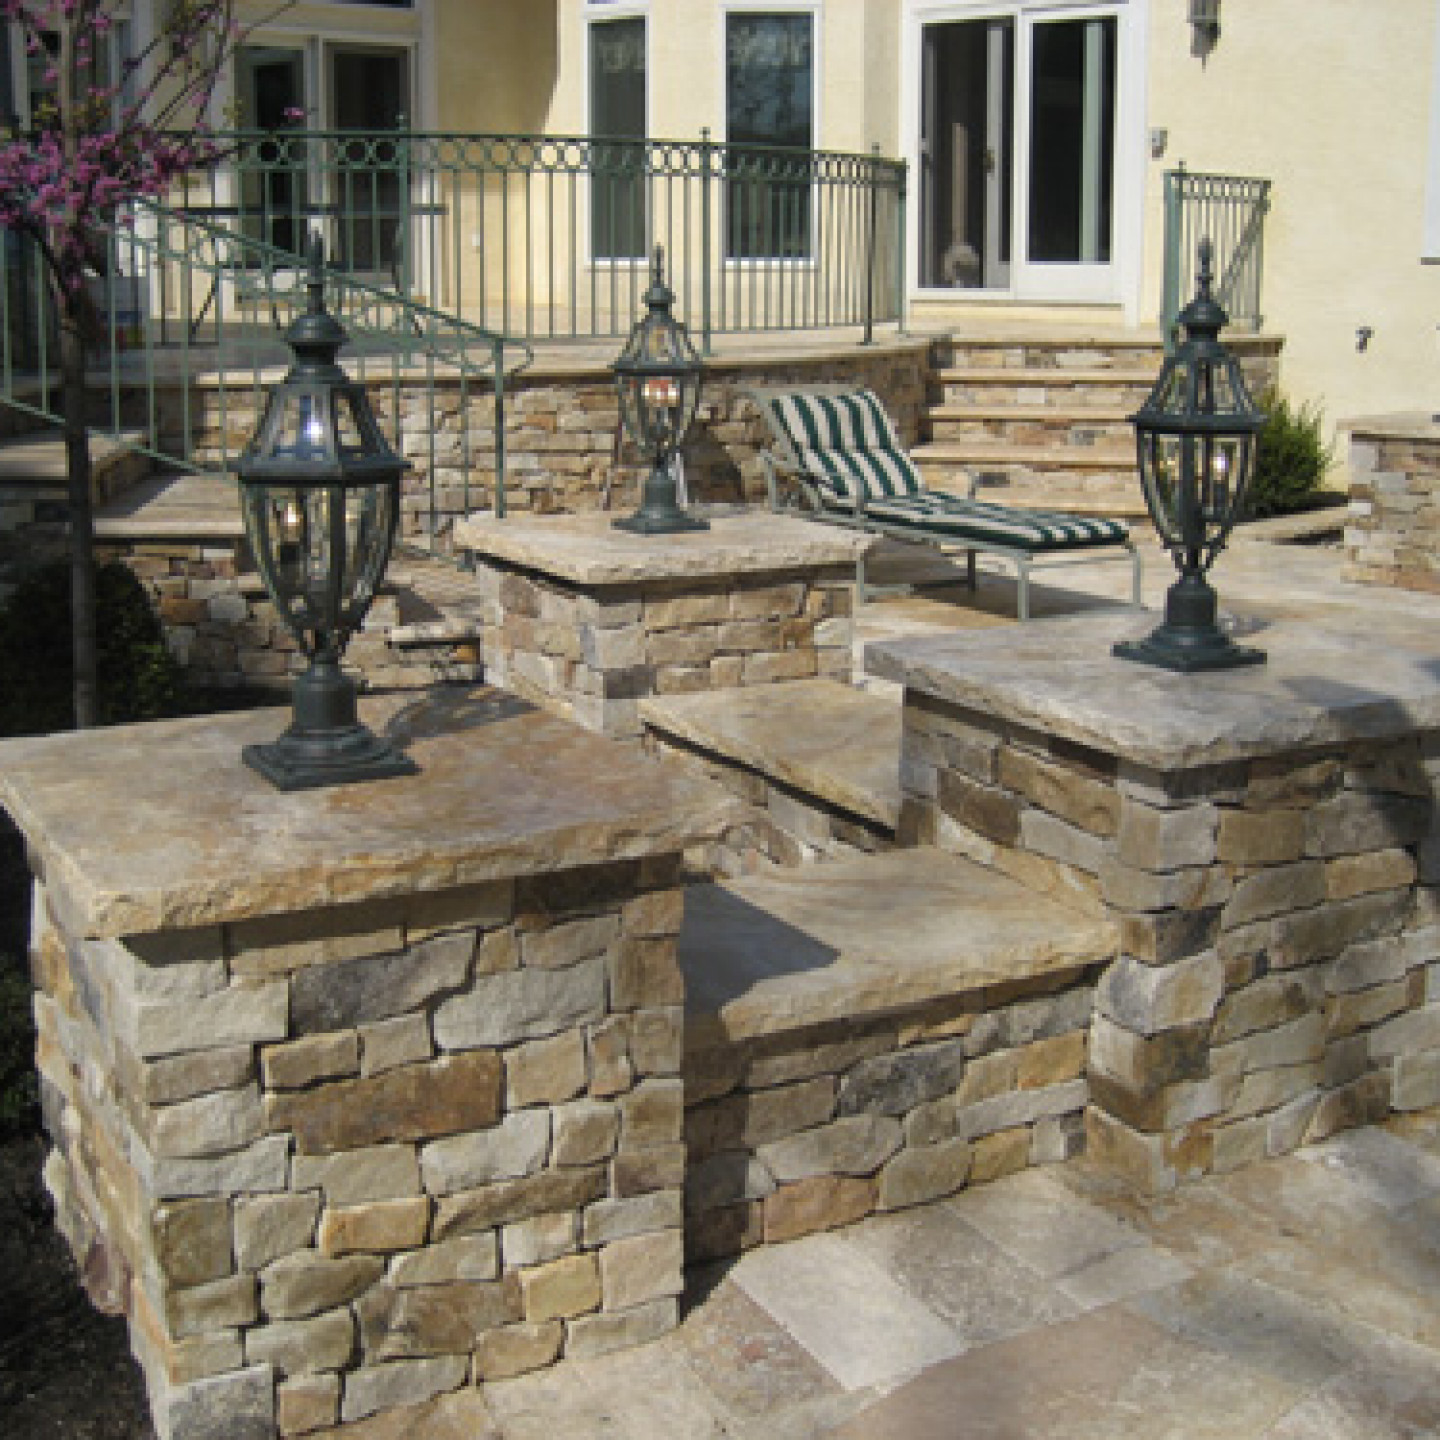 Find out why natural stone pavers are the right choice for your hardscaping project